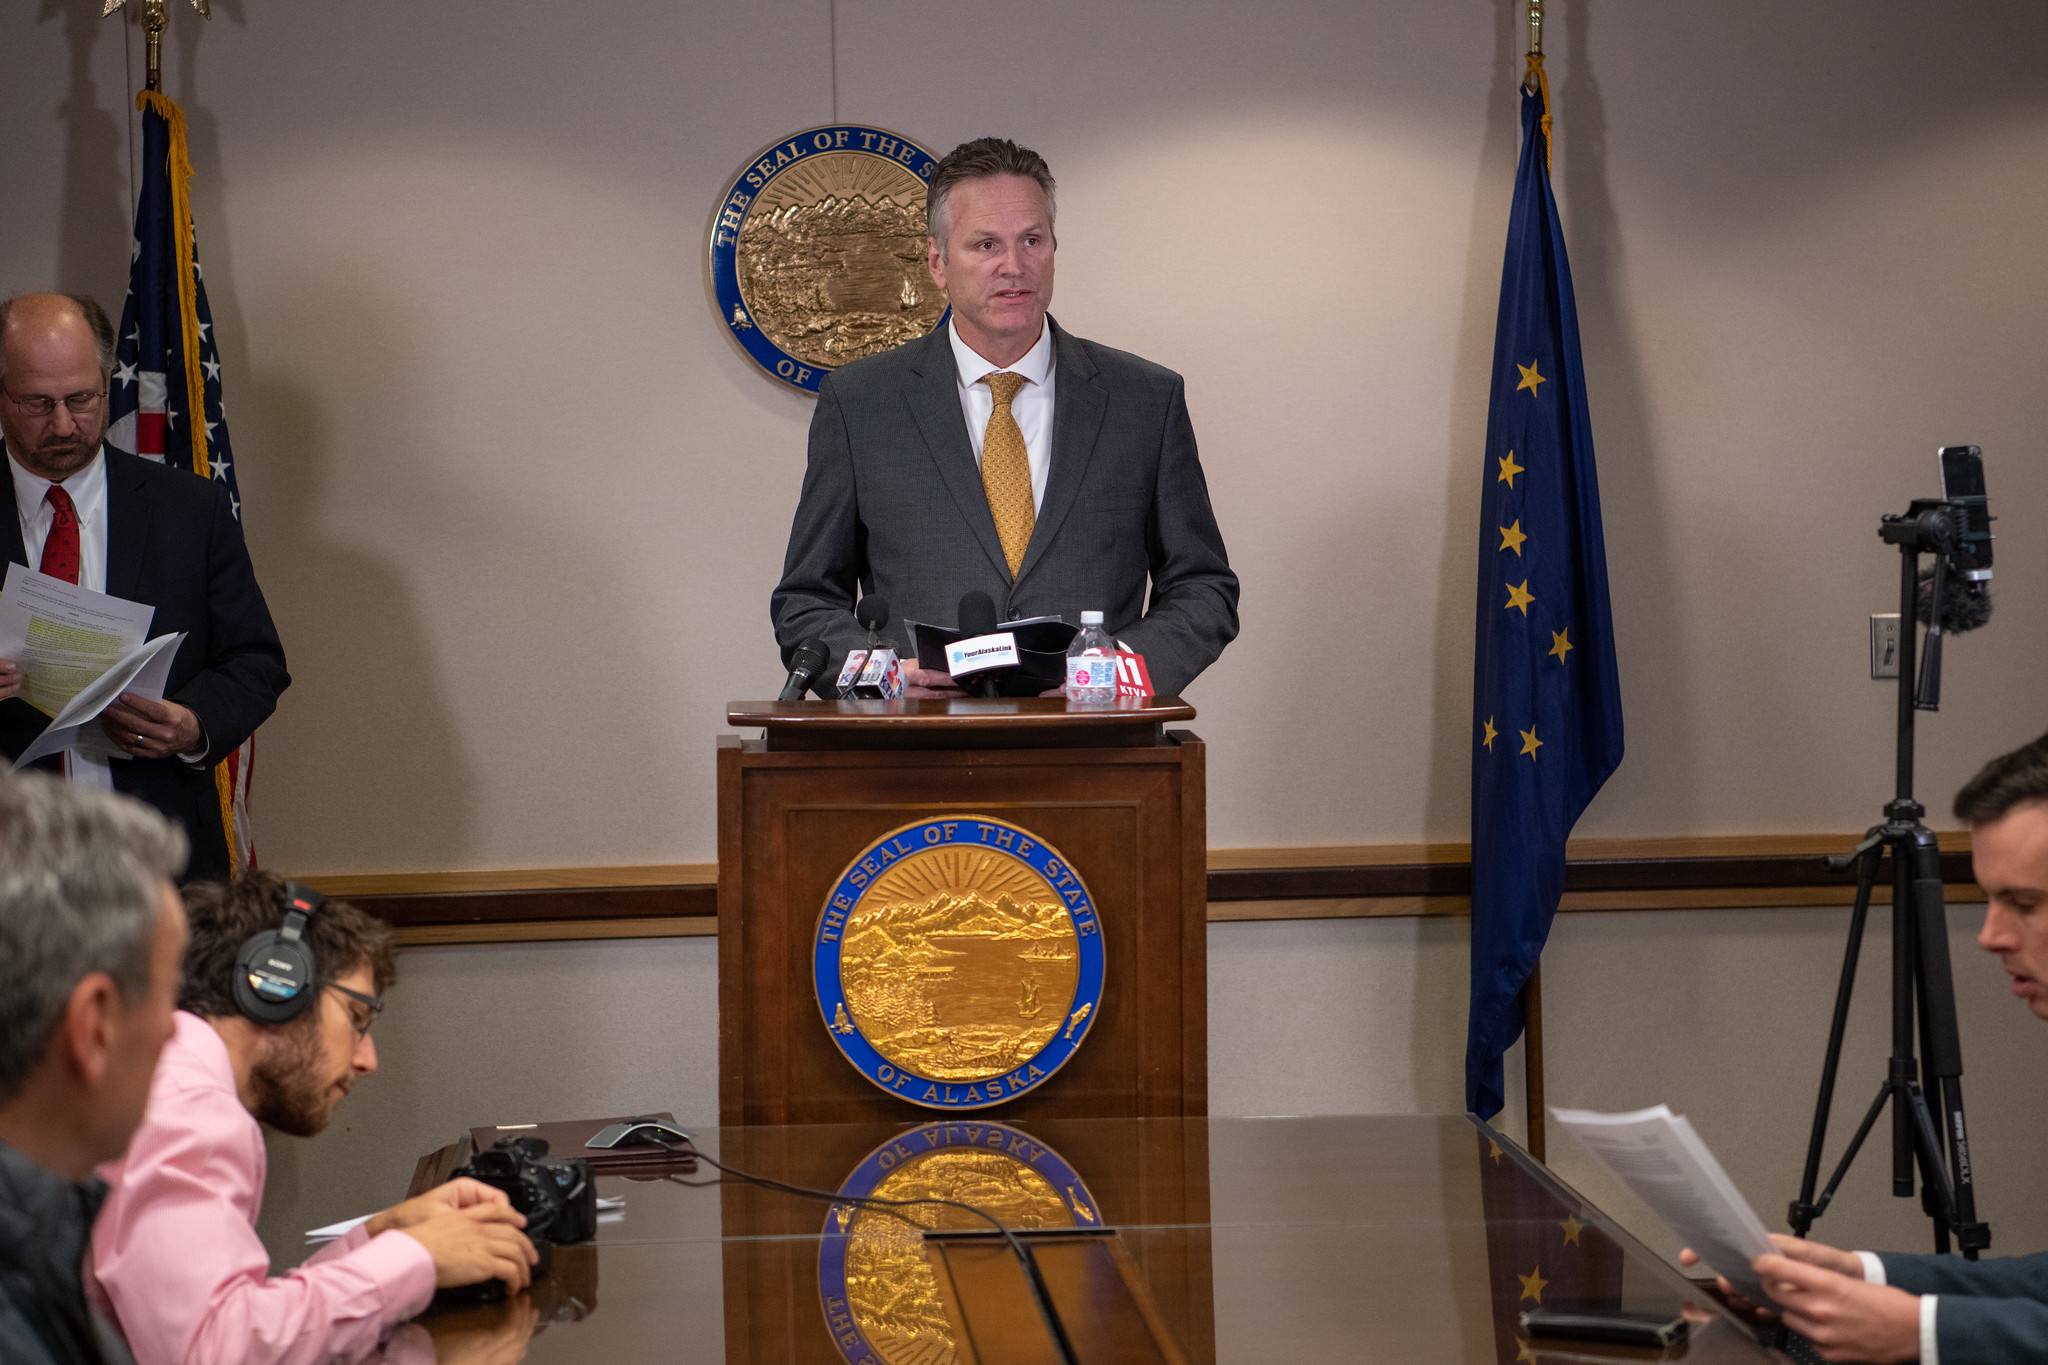 Alaska governor issues executive order on union dues